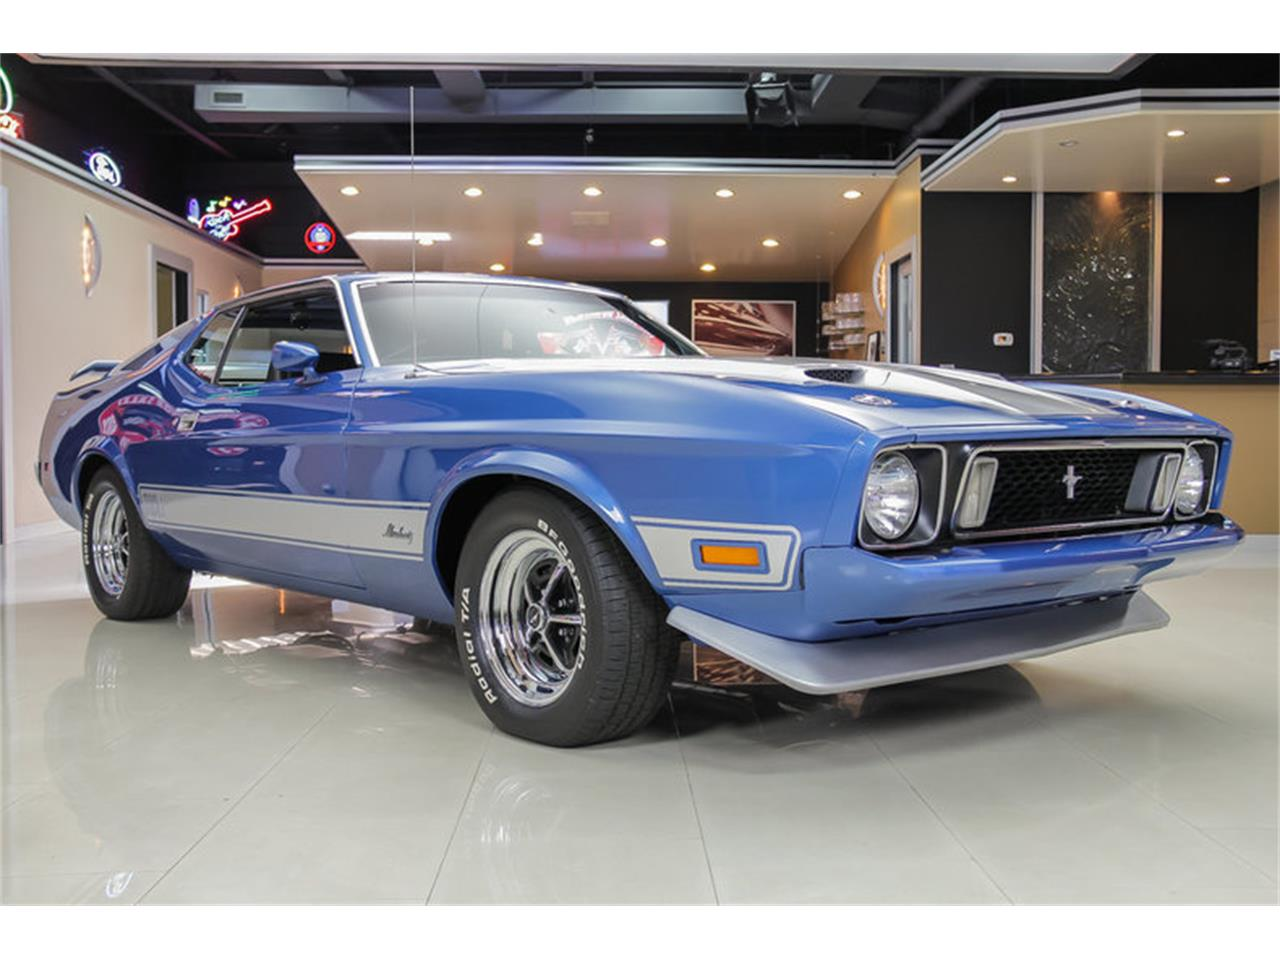 Large Picture of '73 Ford Mustang Mach 1 Q Code - $34,900.00 Offered by Vanguard Motor Sales - JDX1